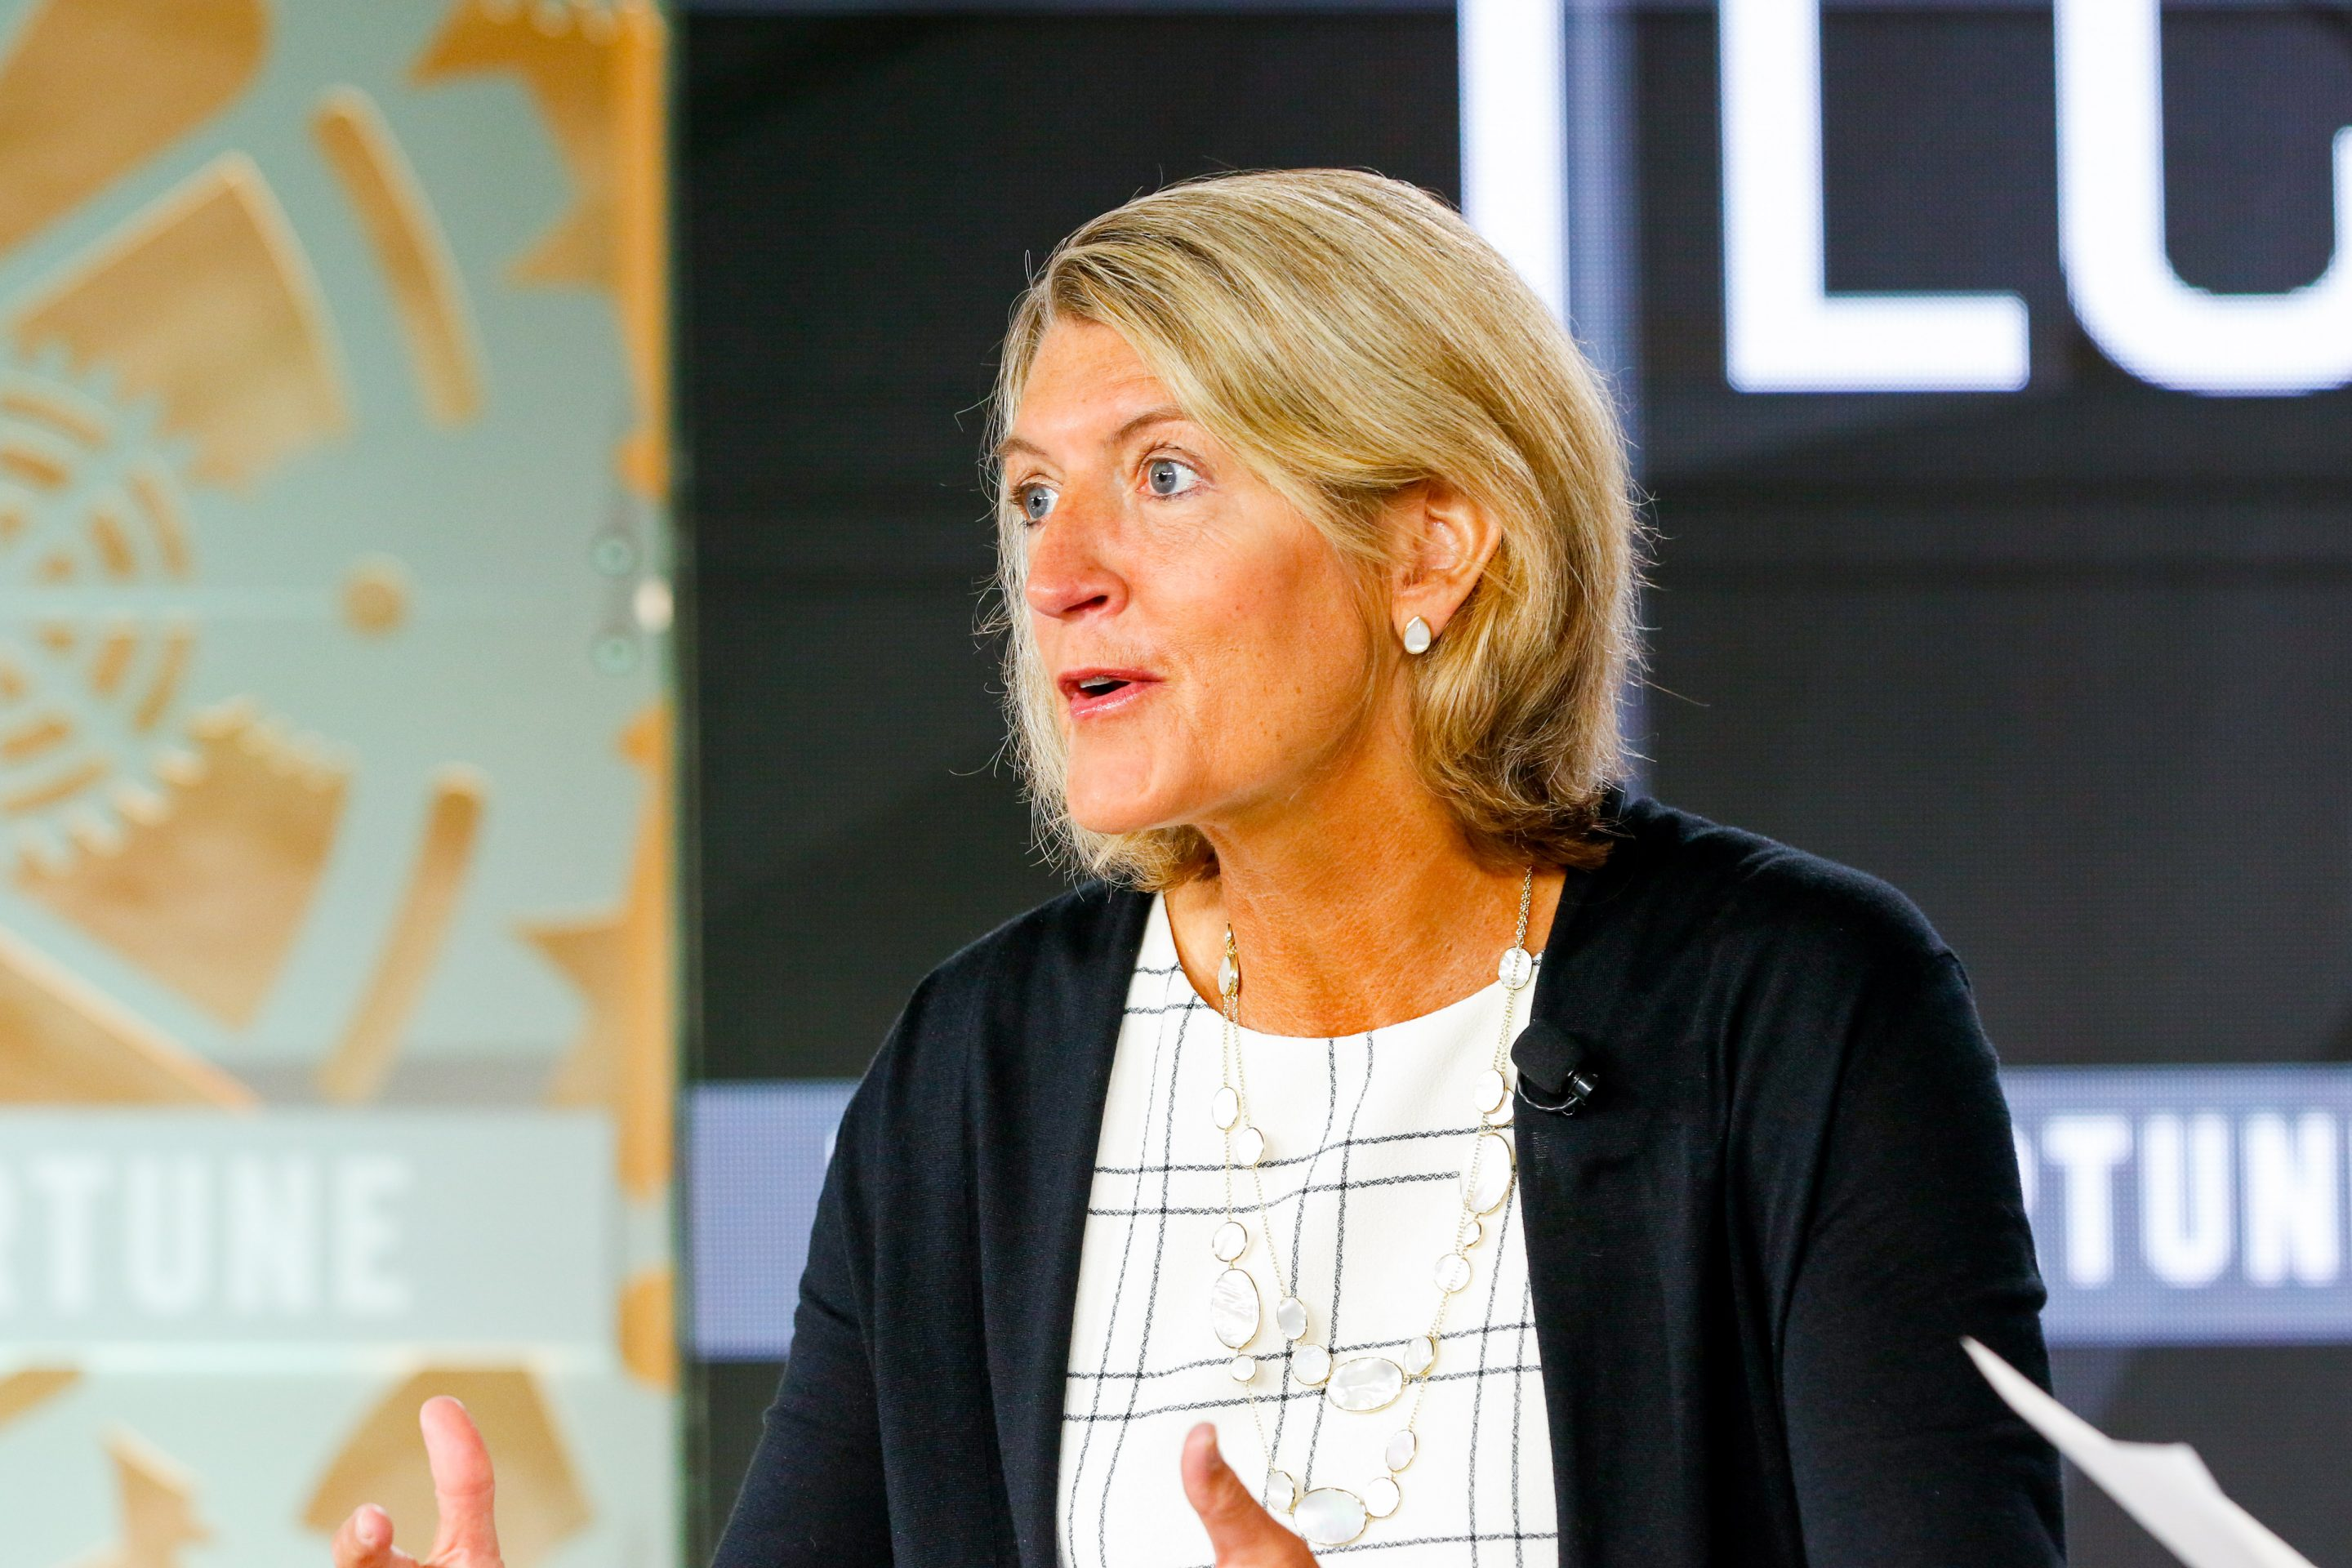 Land O'Lakes CEO Beth Ford speaks at Fortune's Brainstorm Tech conference on July 16, 2019.